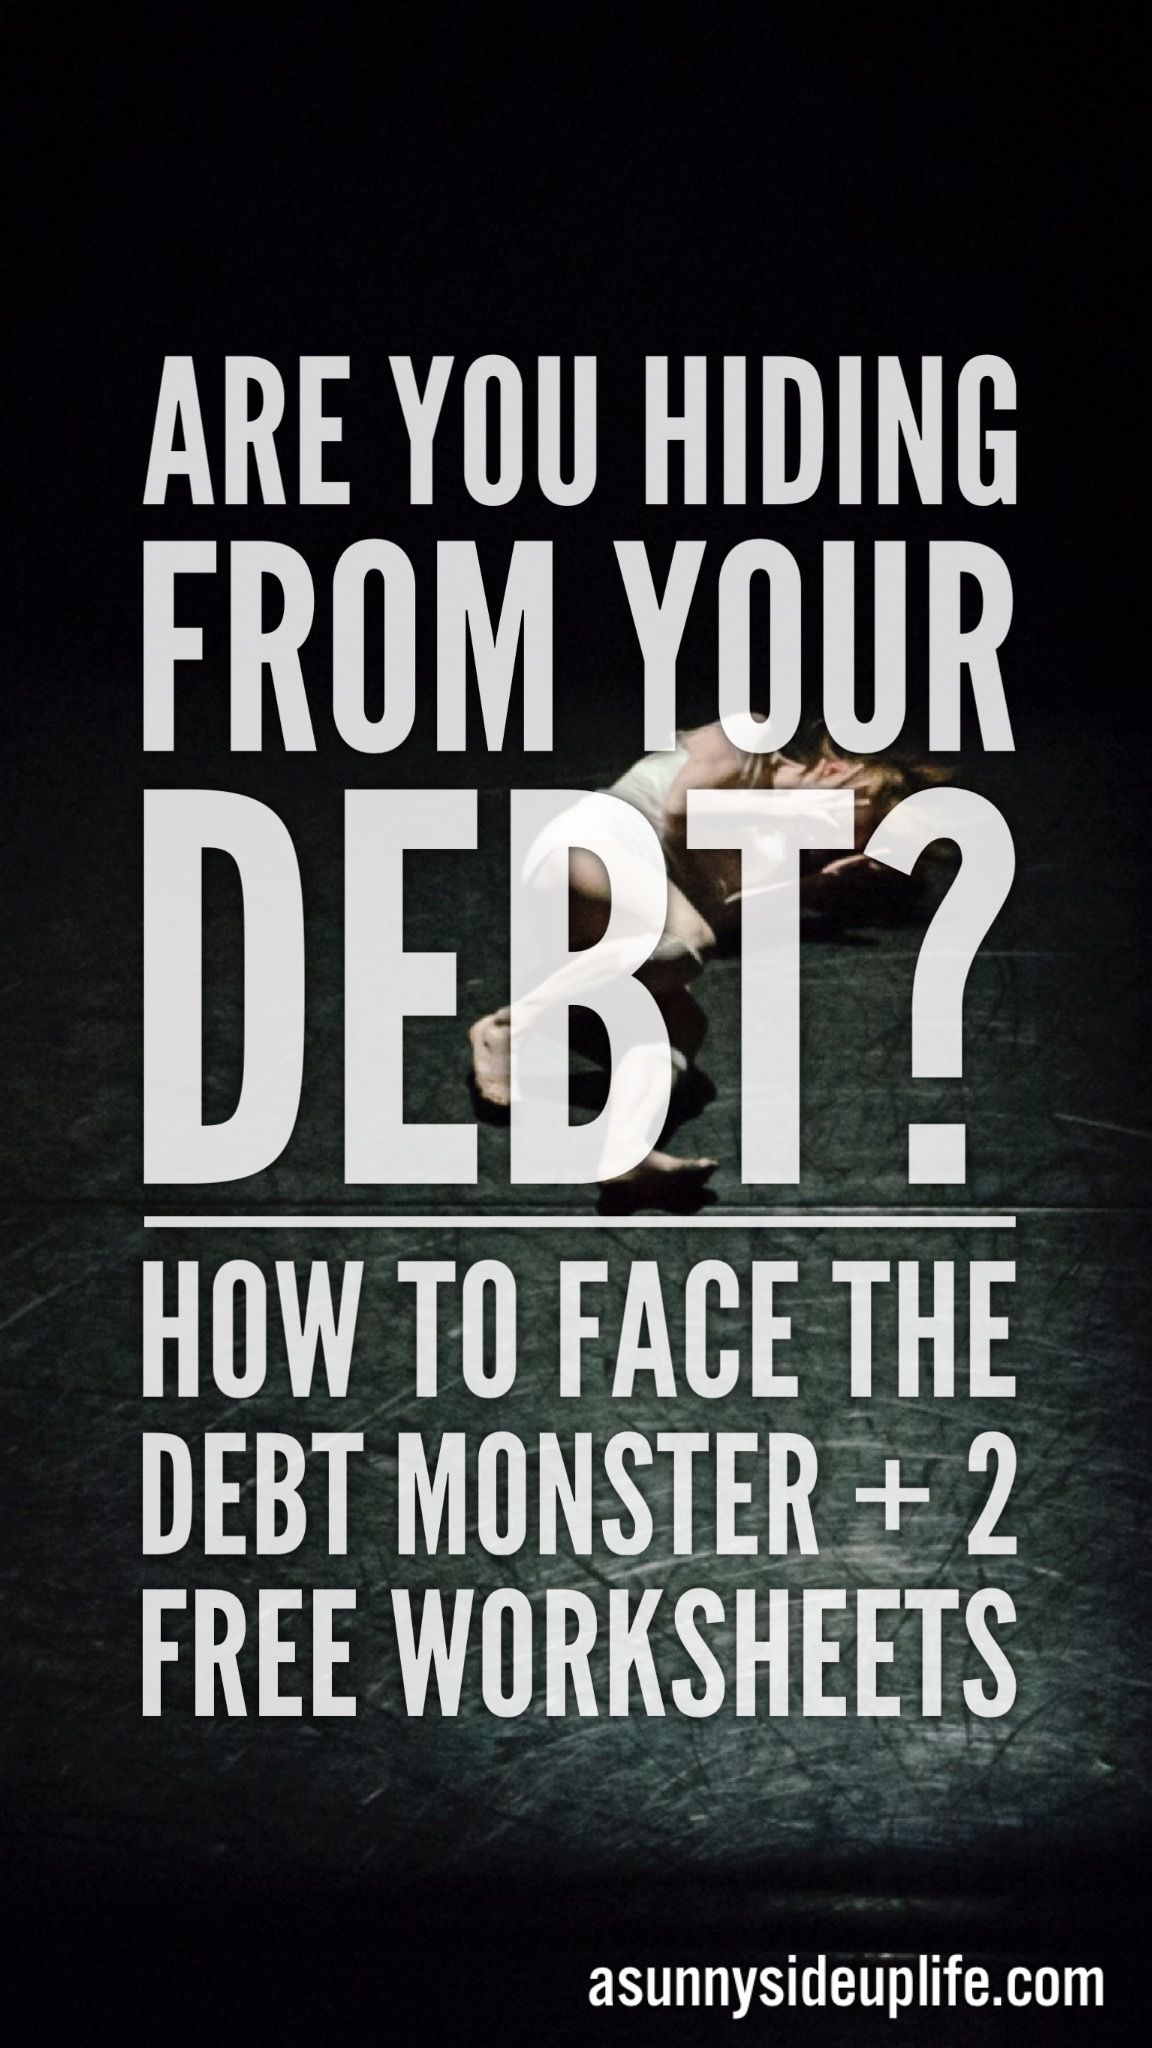 Are You Hiding From Your Debt 2 Free Debt Payoff Plan